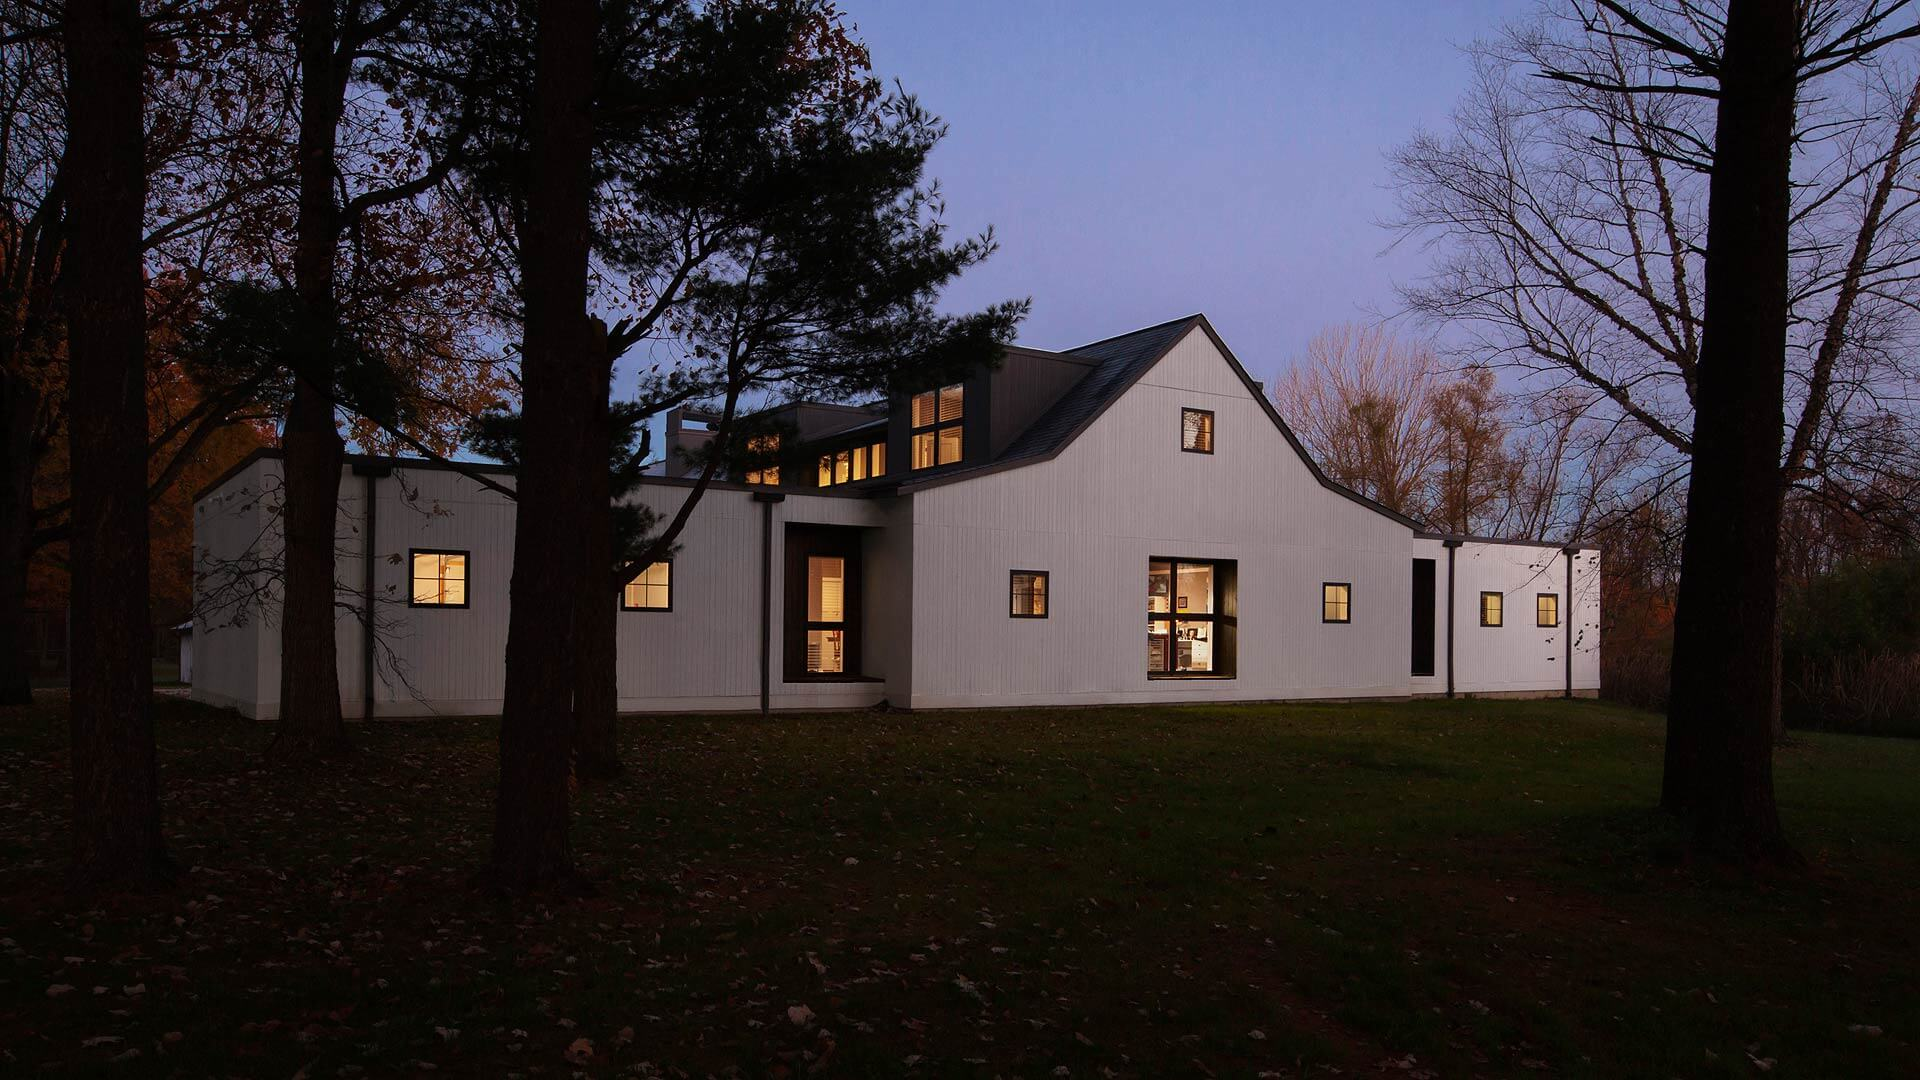 white siding, dawn, dormers, flat roofs, forest trees, fall, downspouts, black windows, large windows, giant windows, vertical siding, Exterior Elevation - Modern Farmhouse 2 - Zionsville - Indianapolis - HAUS Architecture For Modern Lifestyles, Christopher Short, Architect, AIA, NCARB, LEED AP BD&C